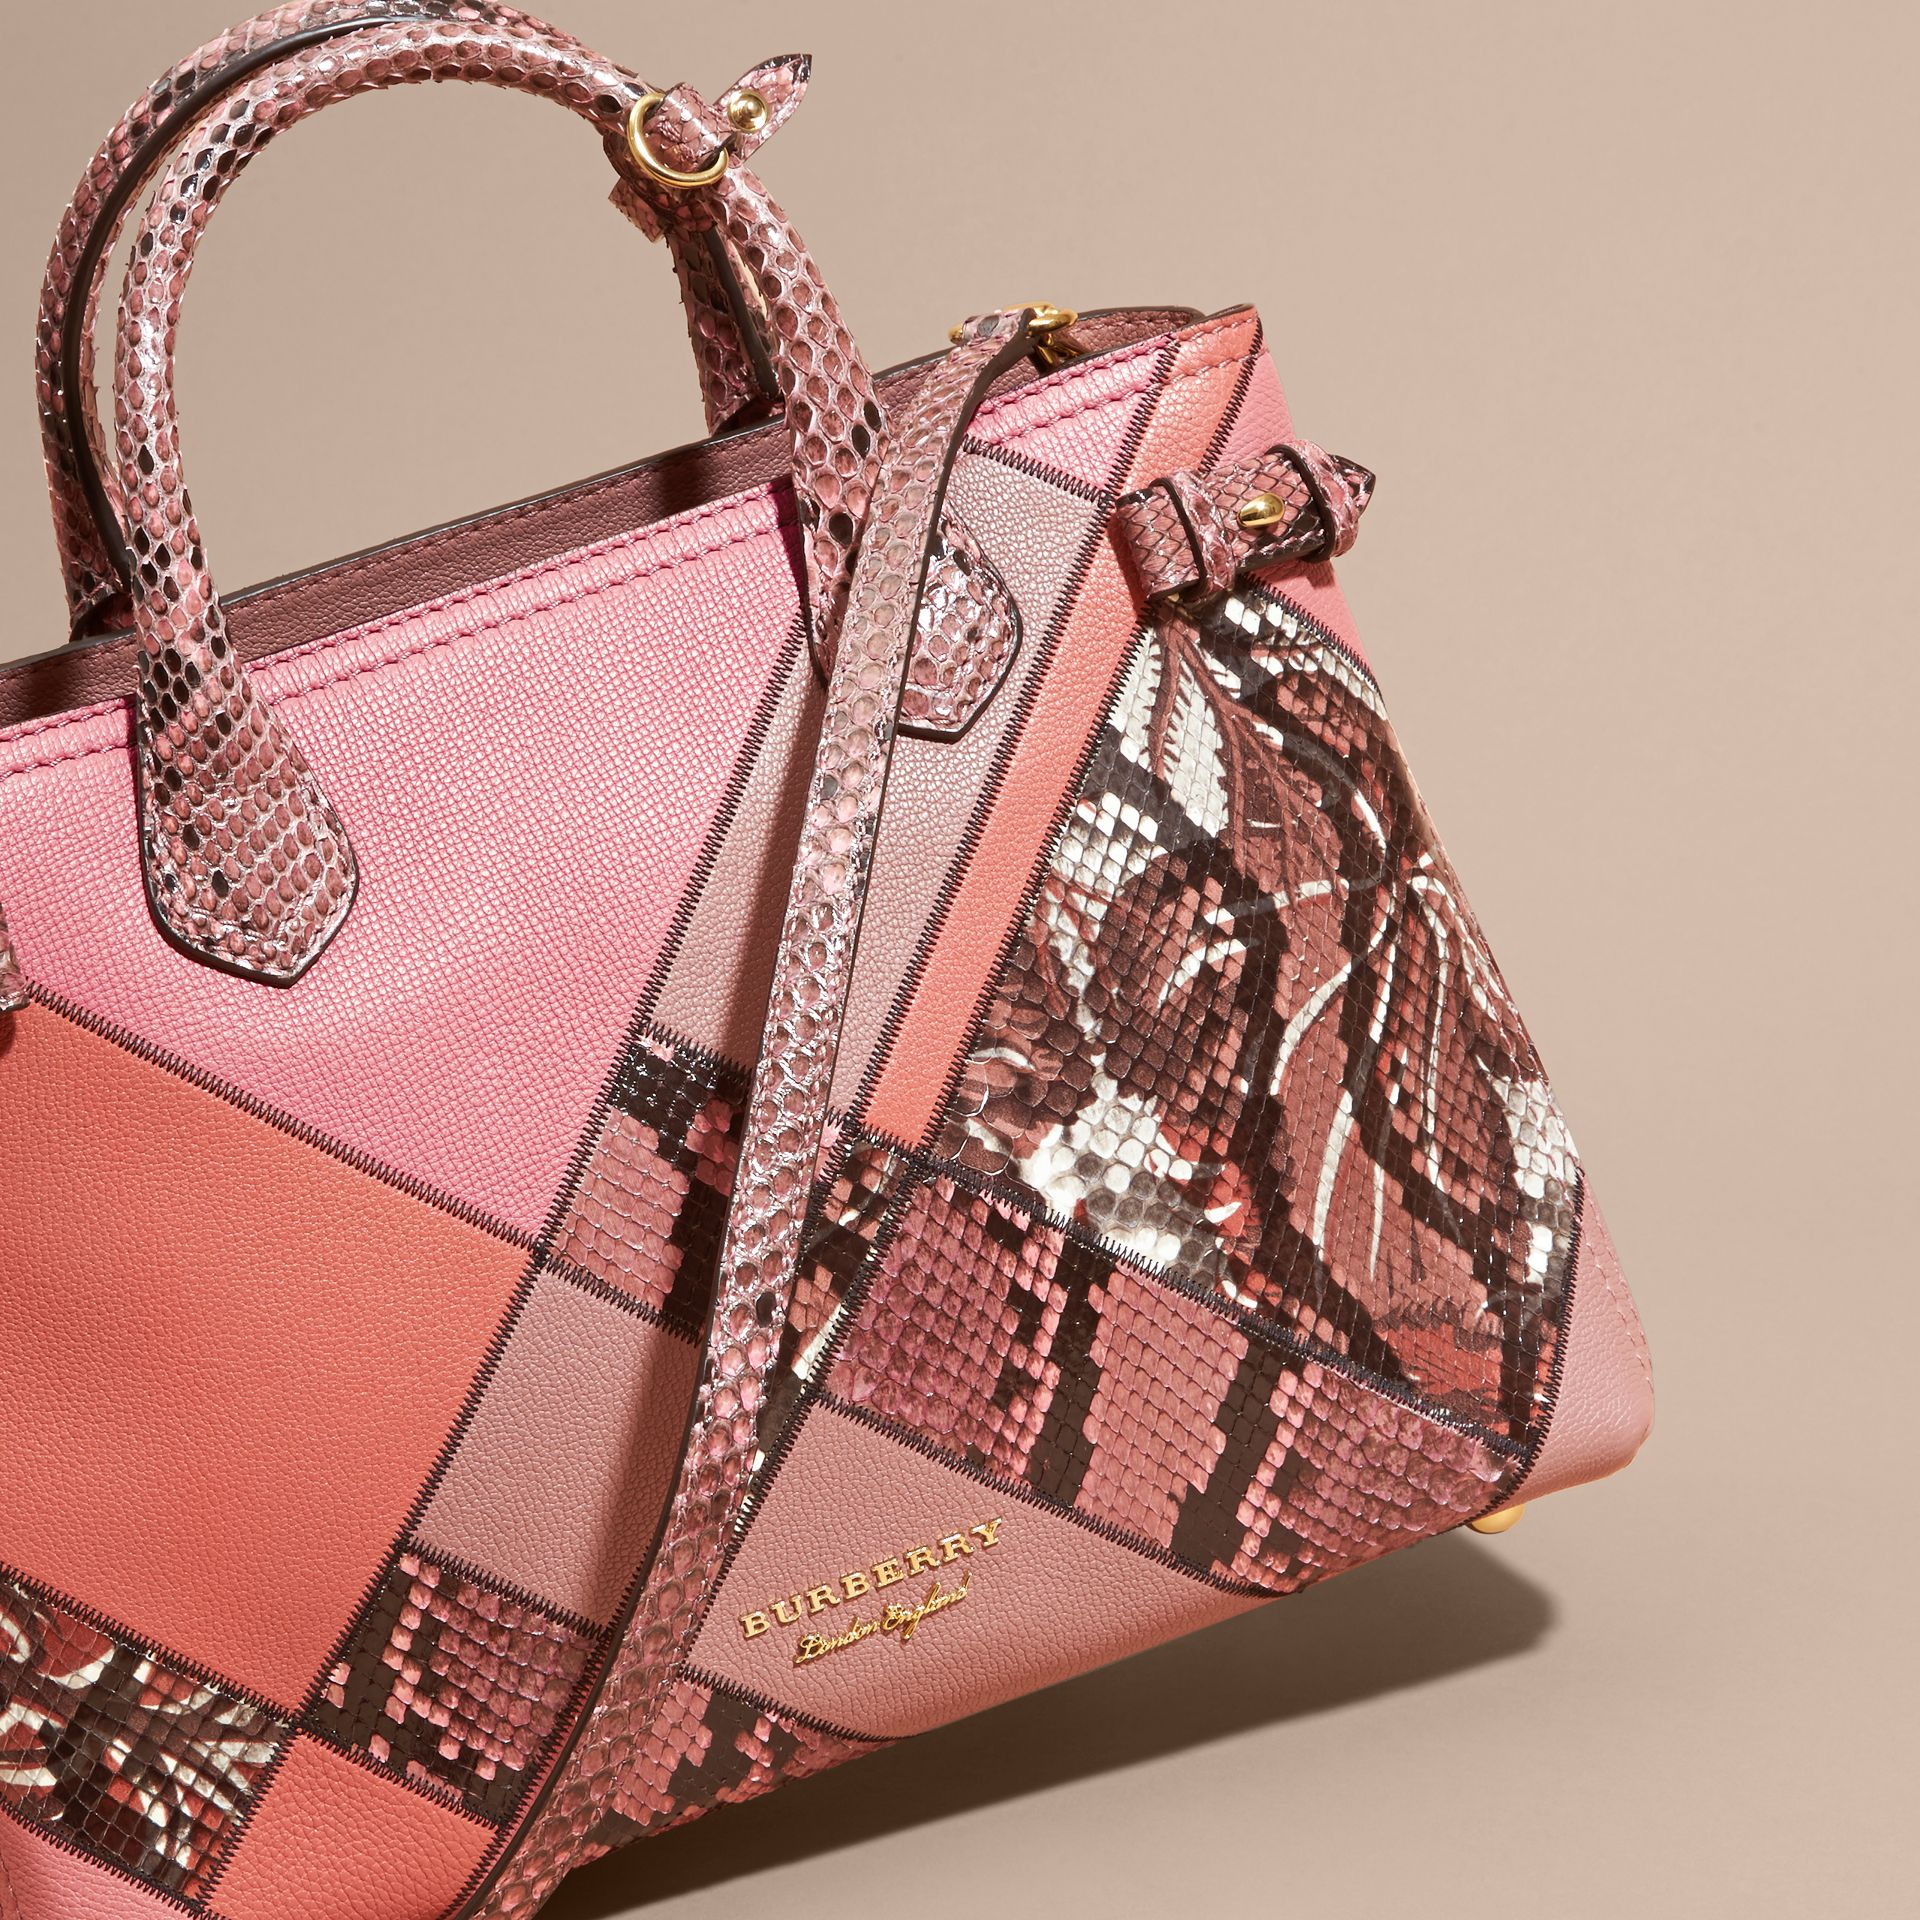 Sac The Banner medium en cuir et python façon patchwork (Rose Cendré) - Femme | Burberry - photo de la galerie 7